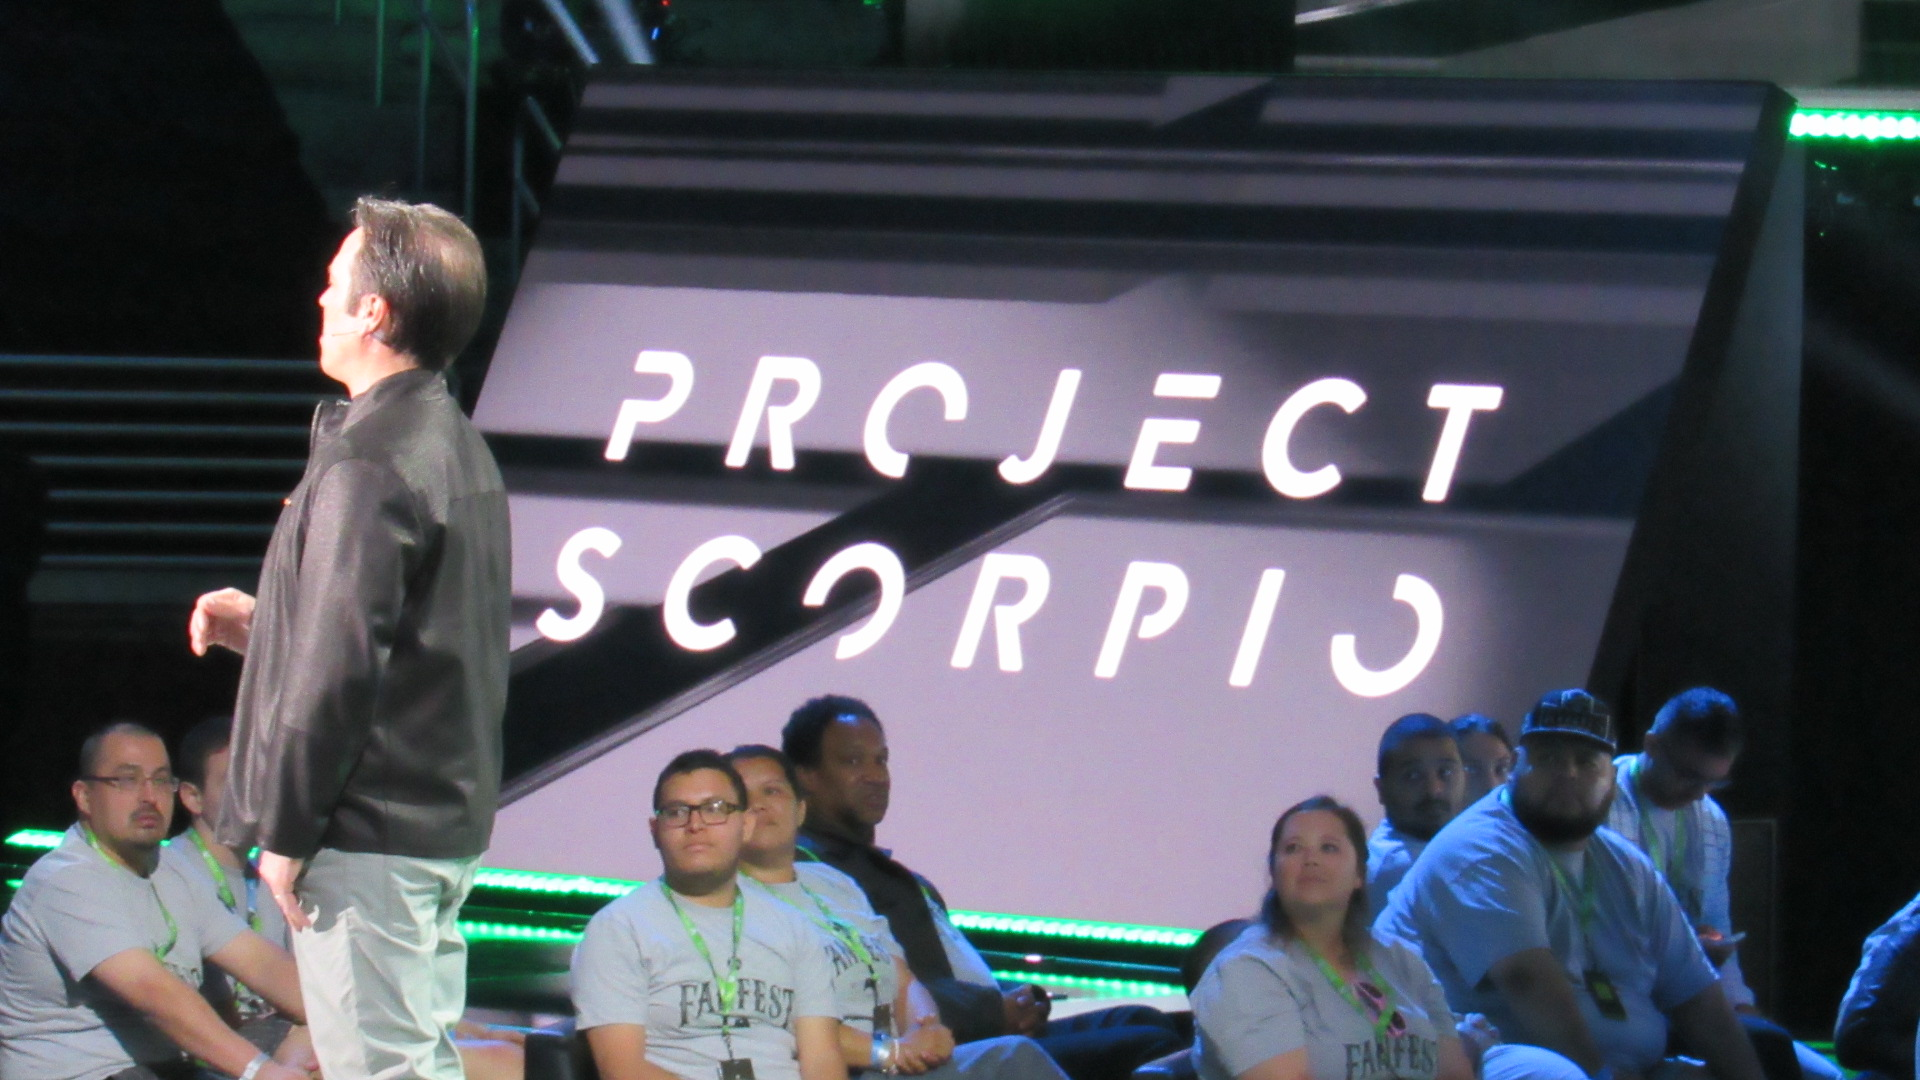 Head Of Xbox Confirms Project Scorpio Has No Issues With Launch Window